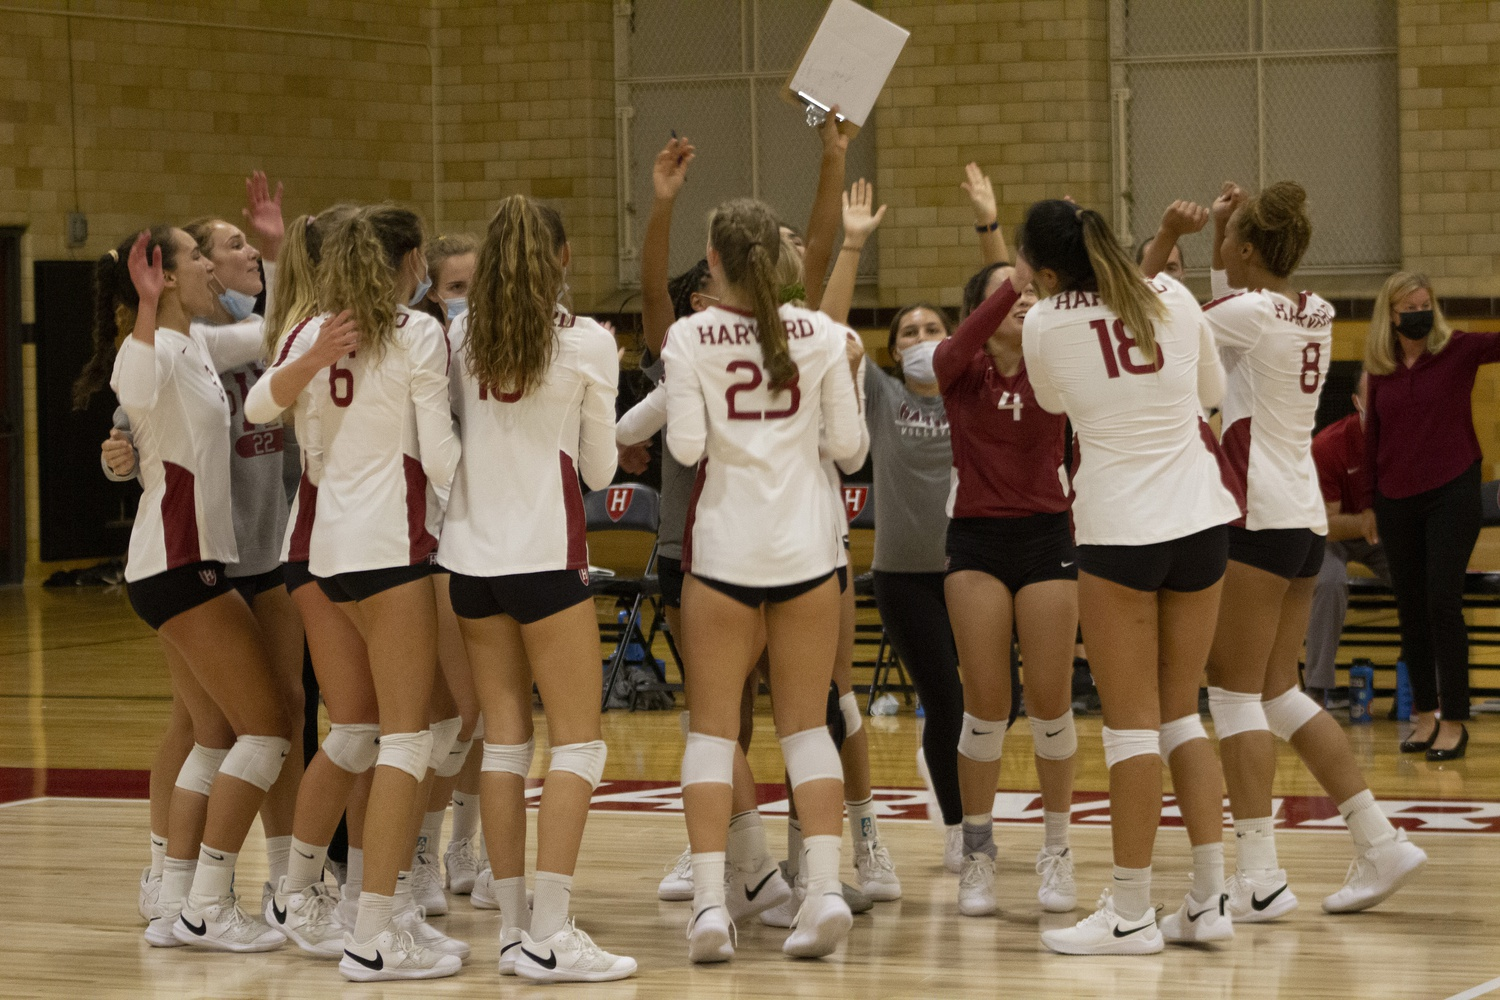 Harvard has a 2-1 record in Ivy League play after splitting a pair of closely contested matches over the weekend.